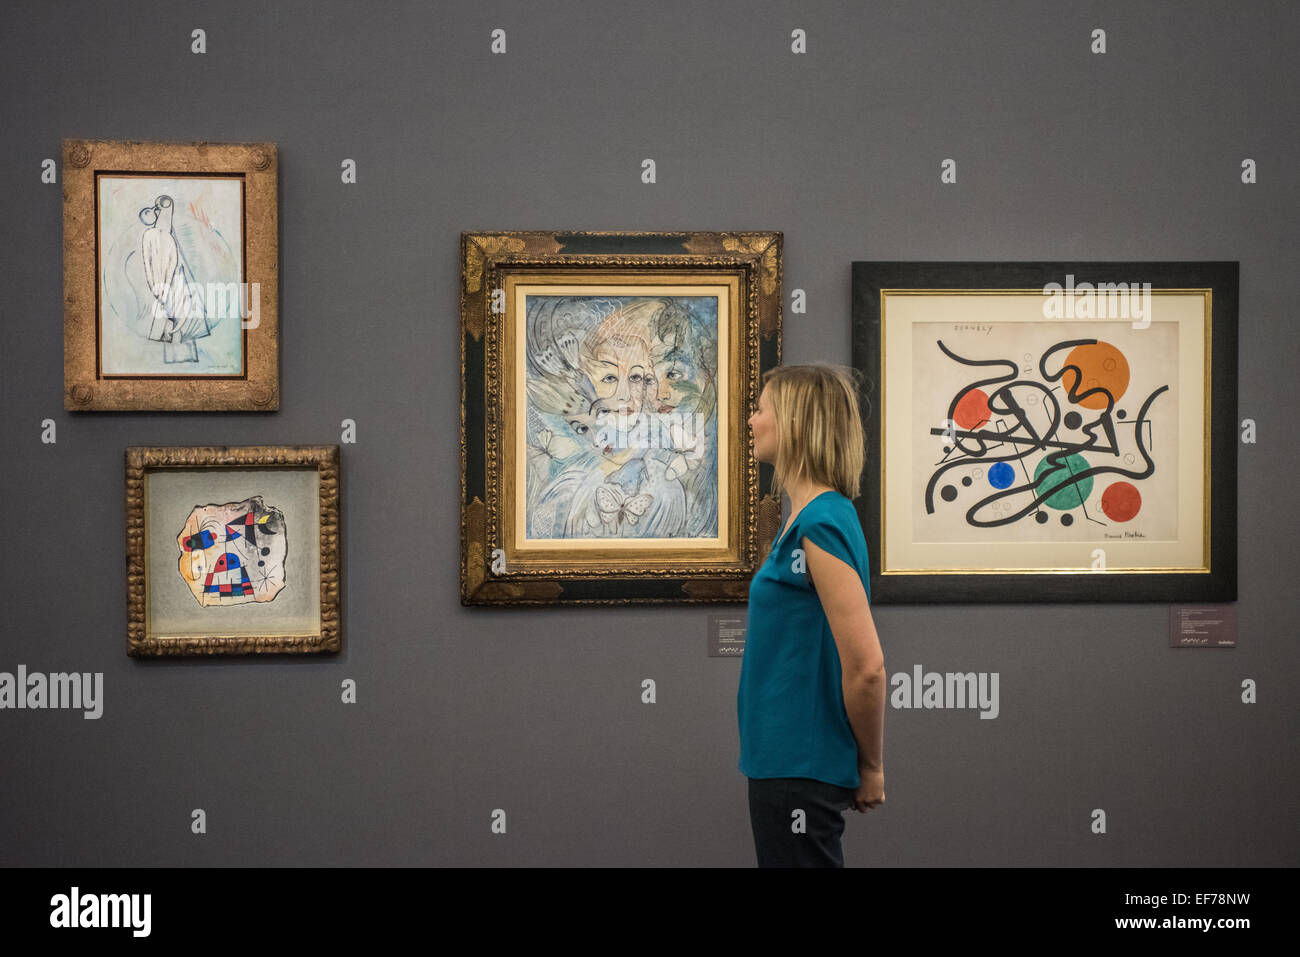 London, UK. 28th January, 2015. : a Sotheby's employee looks at Surrealist works by Max Ernst, Joan Miró and - Stock Image